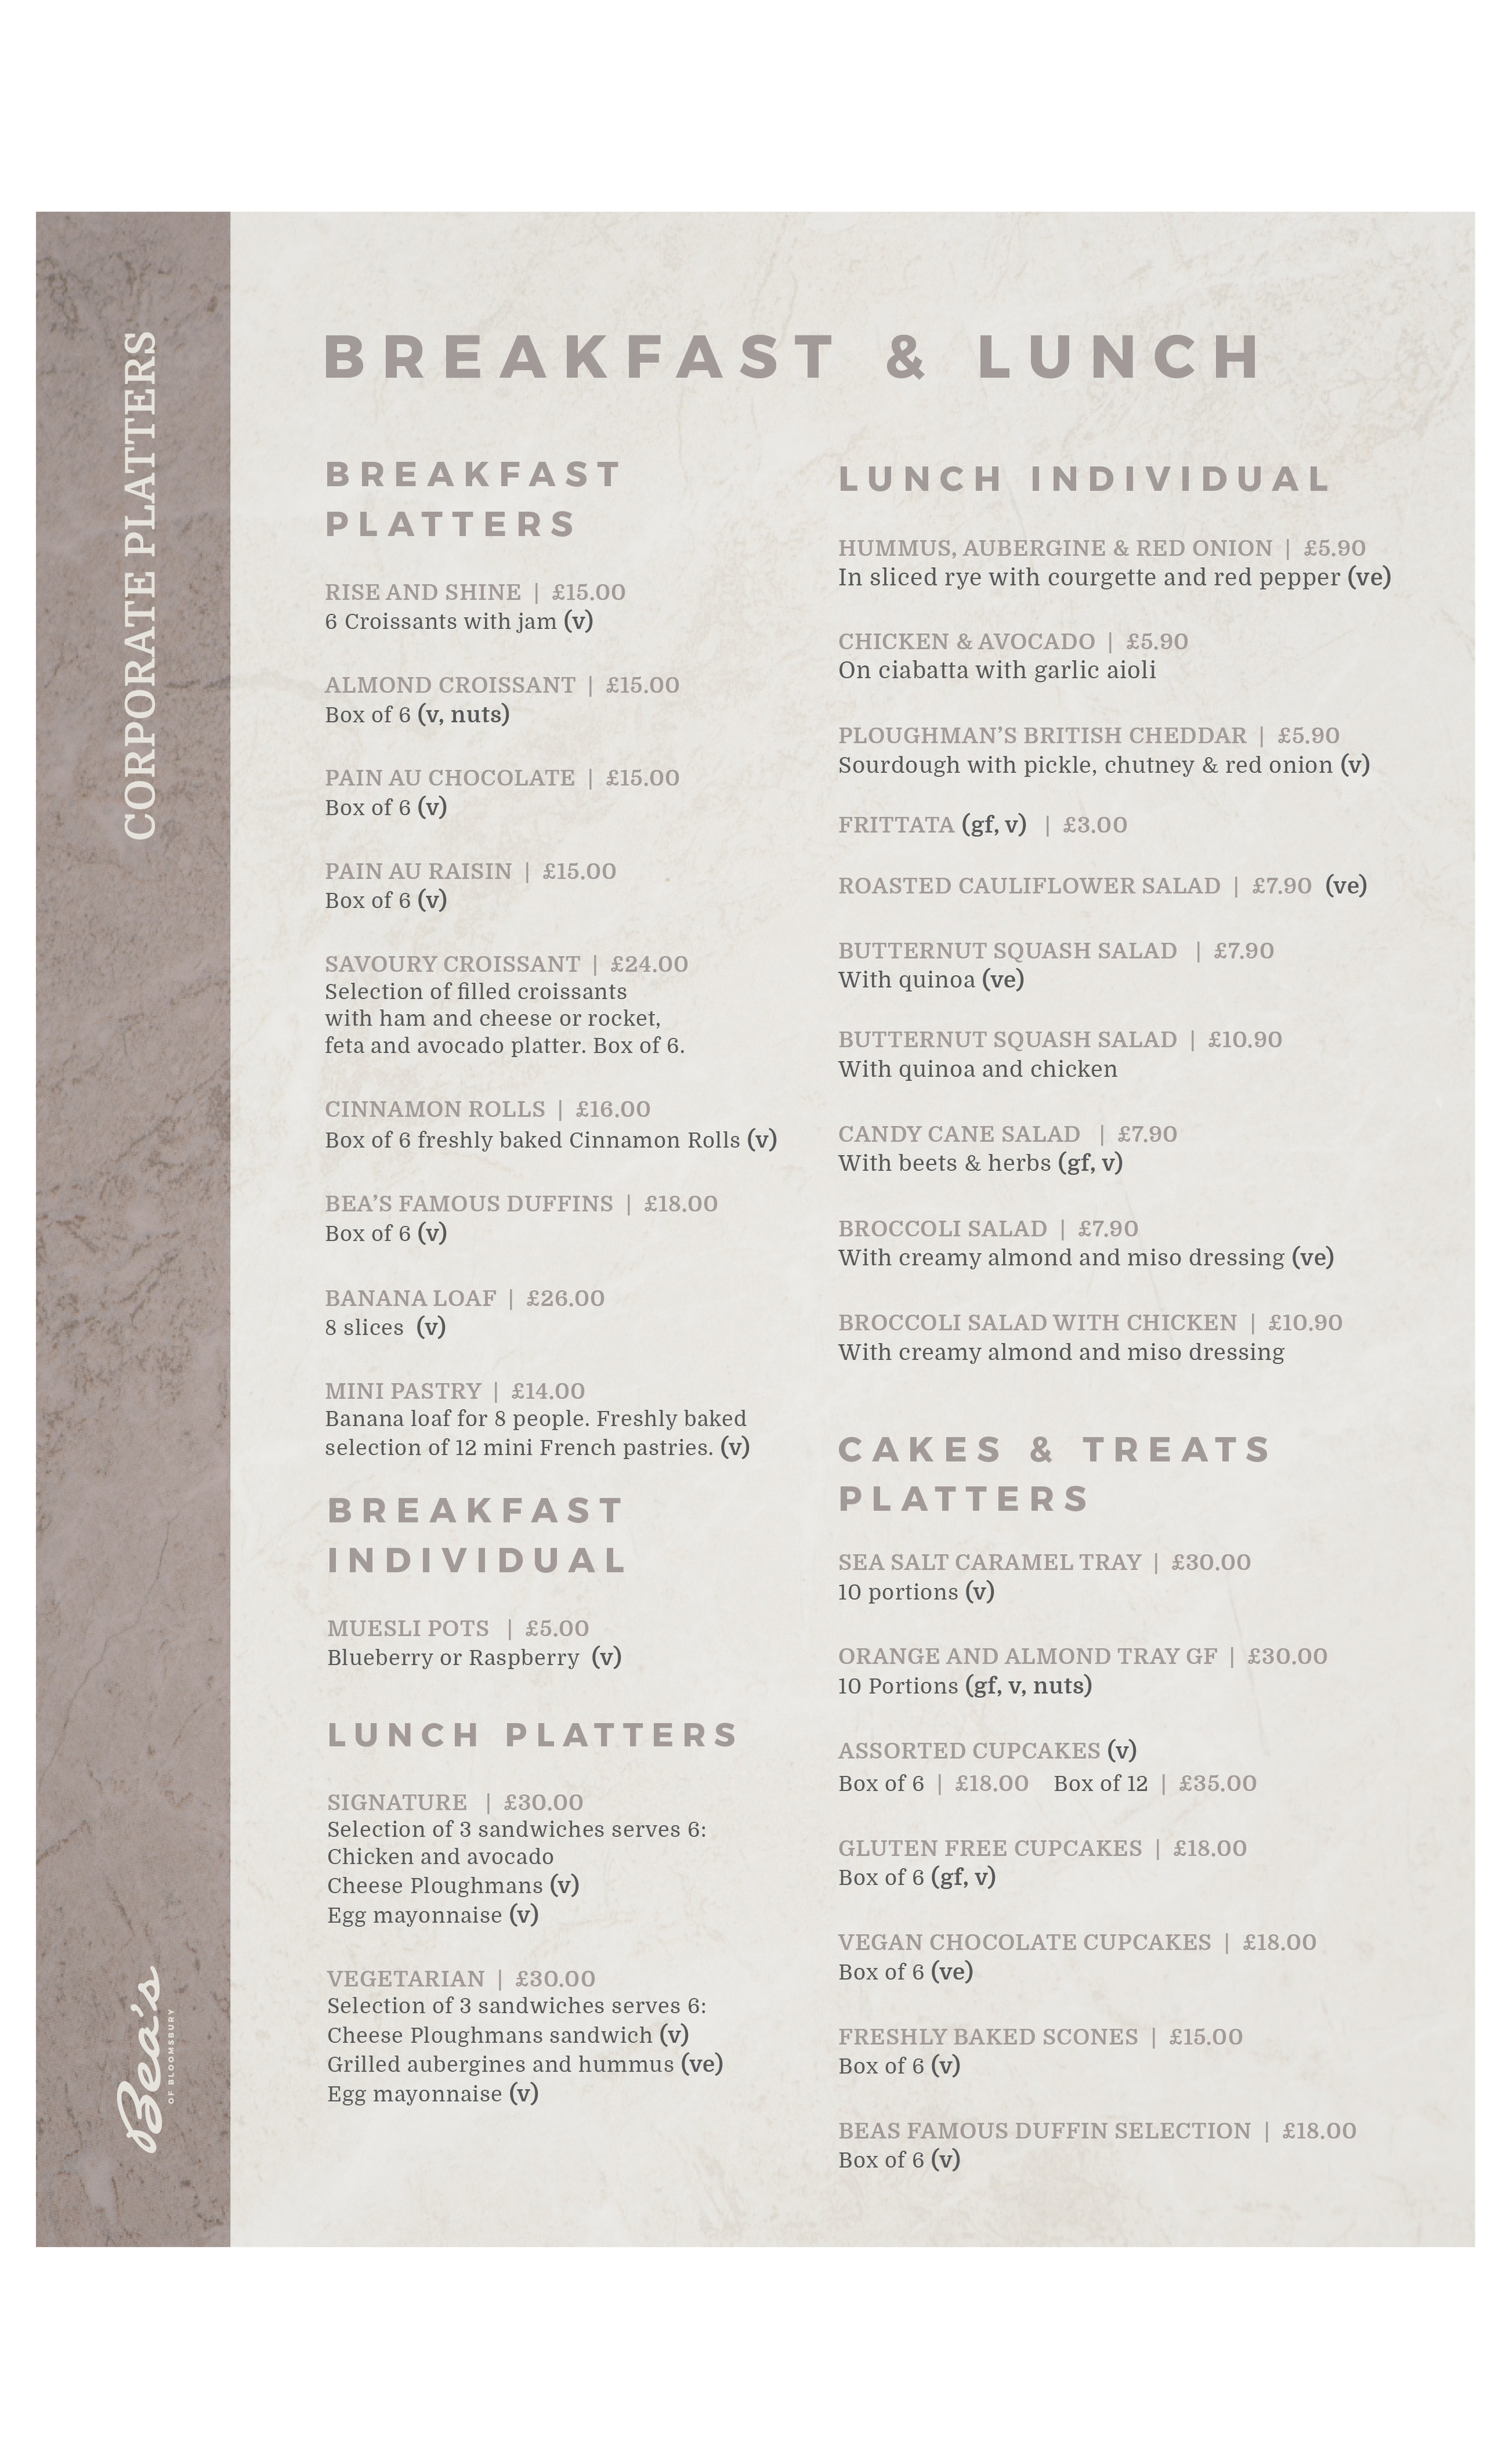 Beas_Corporate Platters Menu_Page_1.jpg